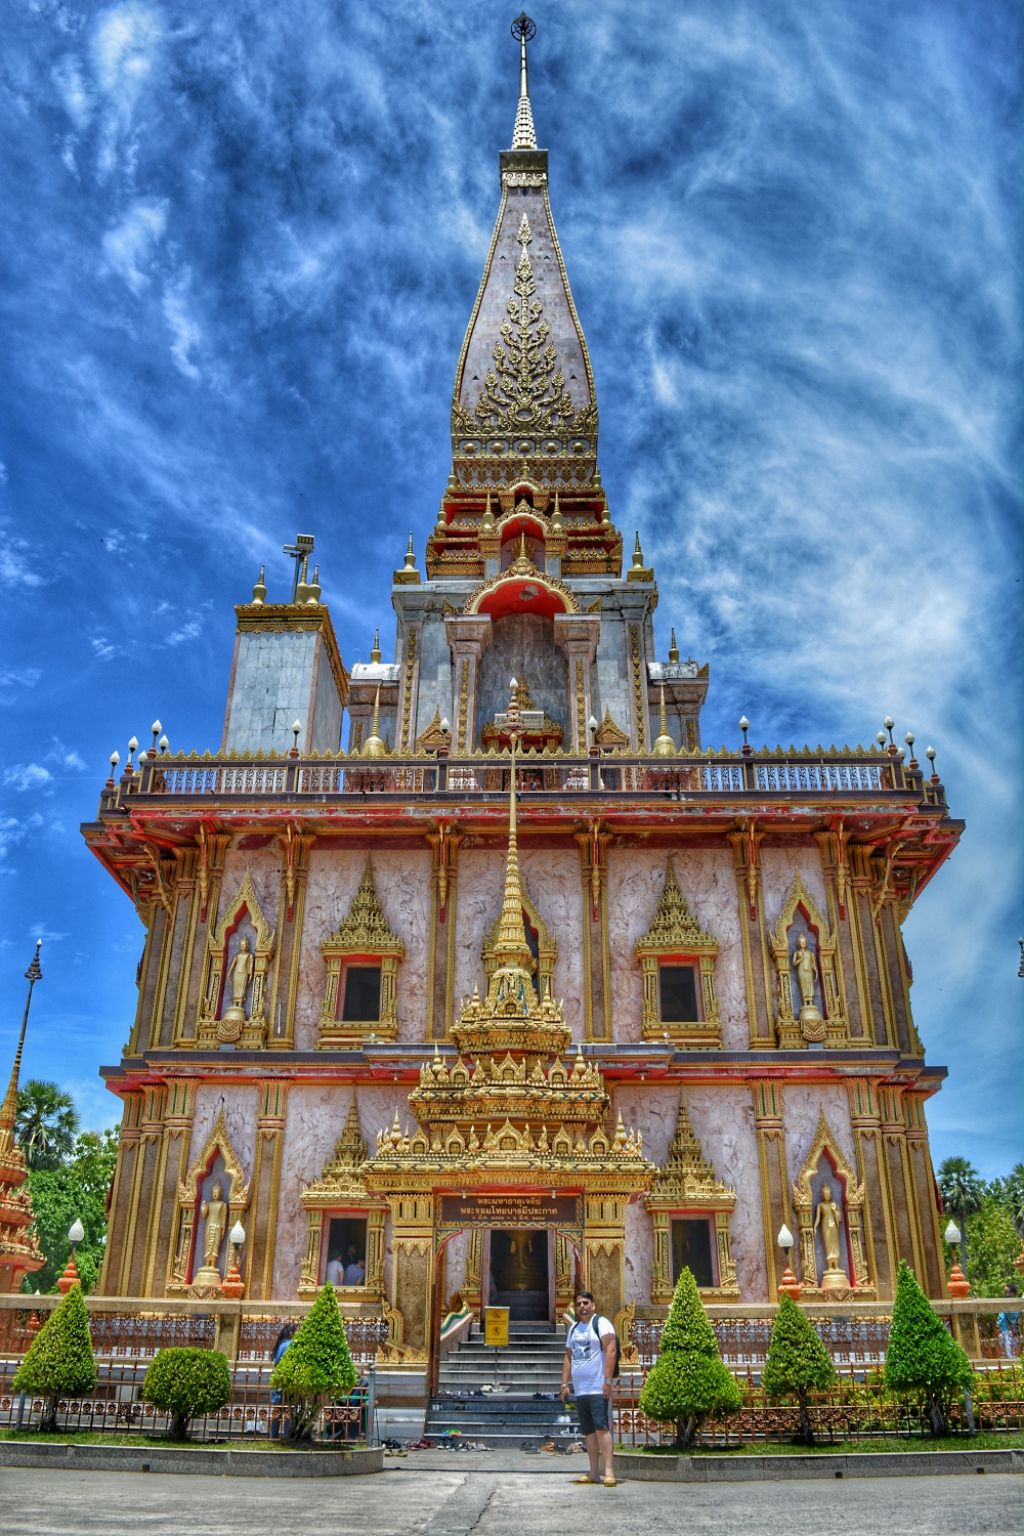 Photo of Wat Chalong Temple By Shalini Sharma